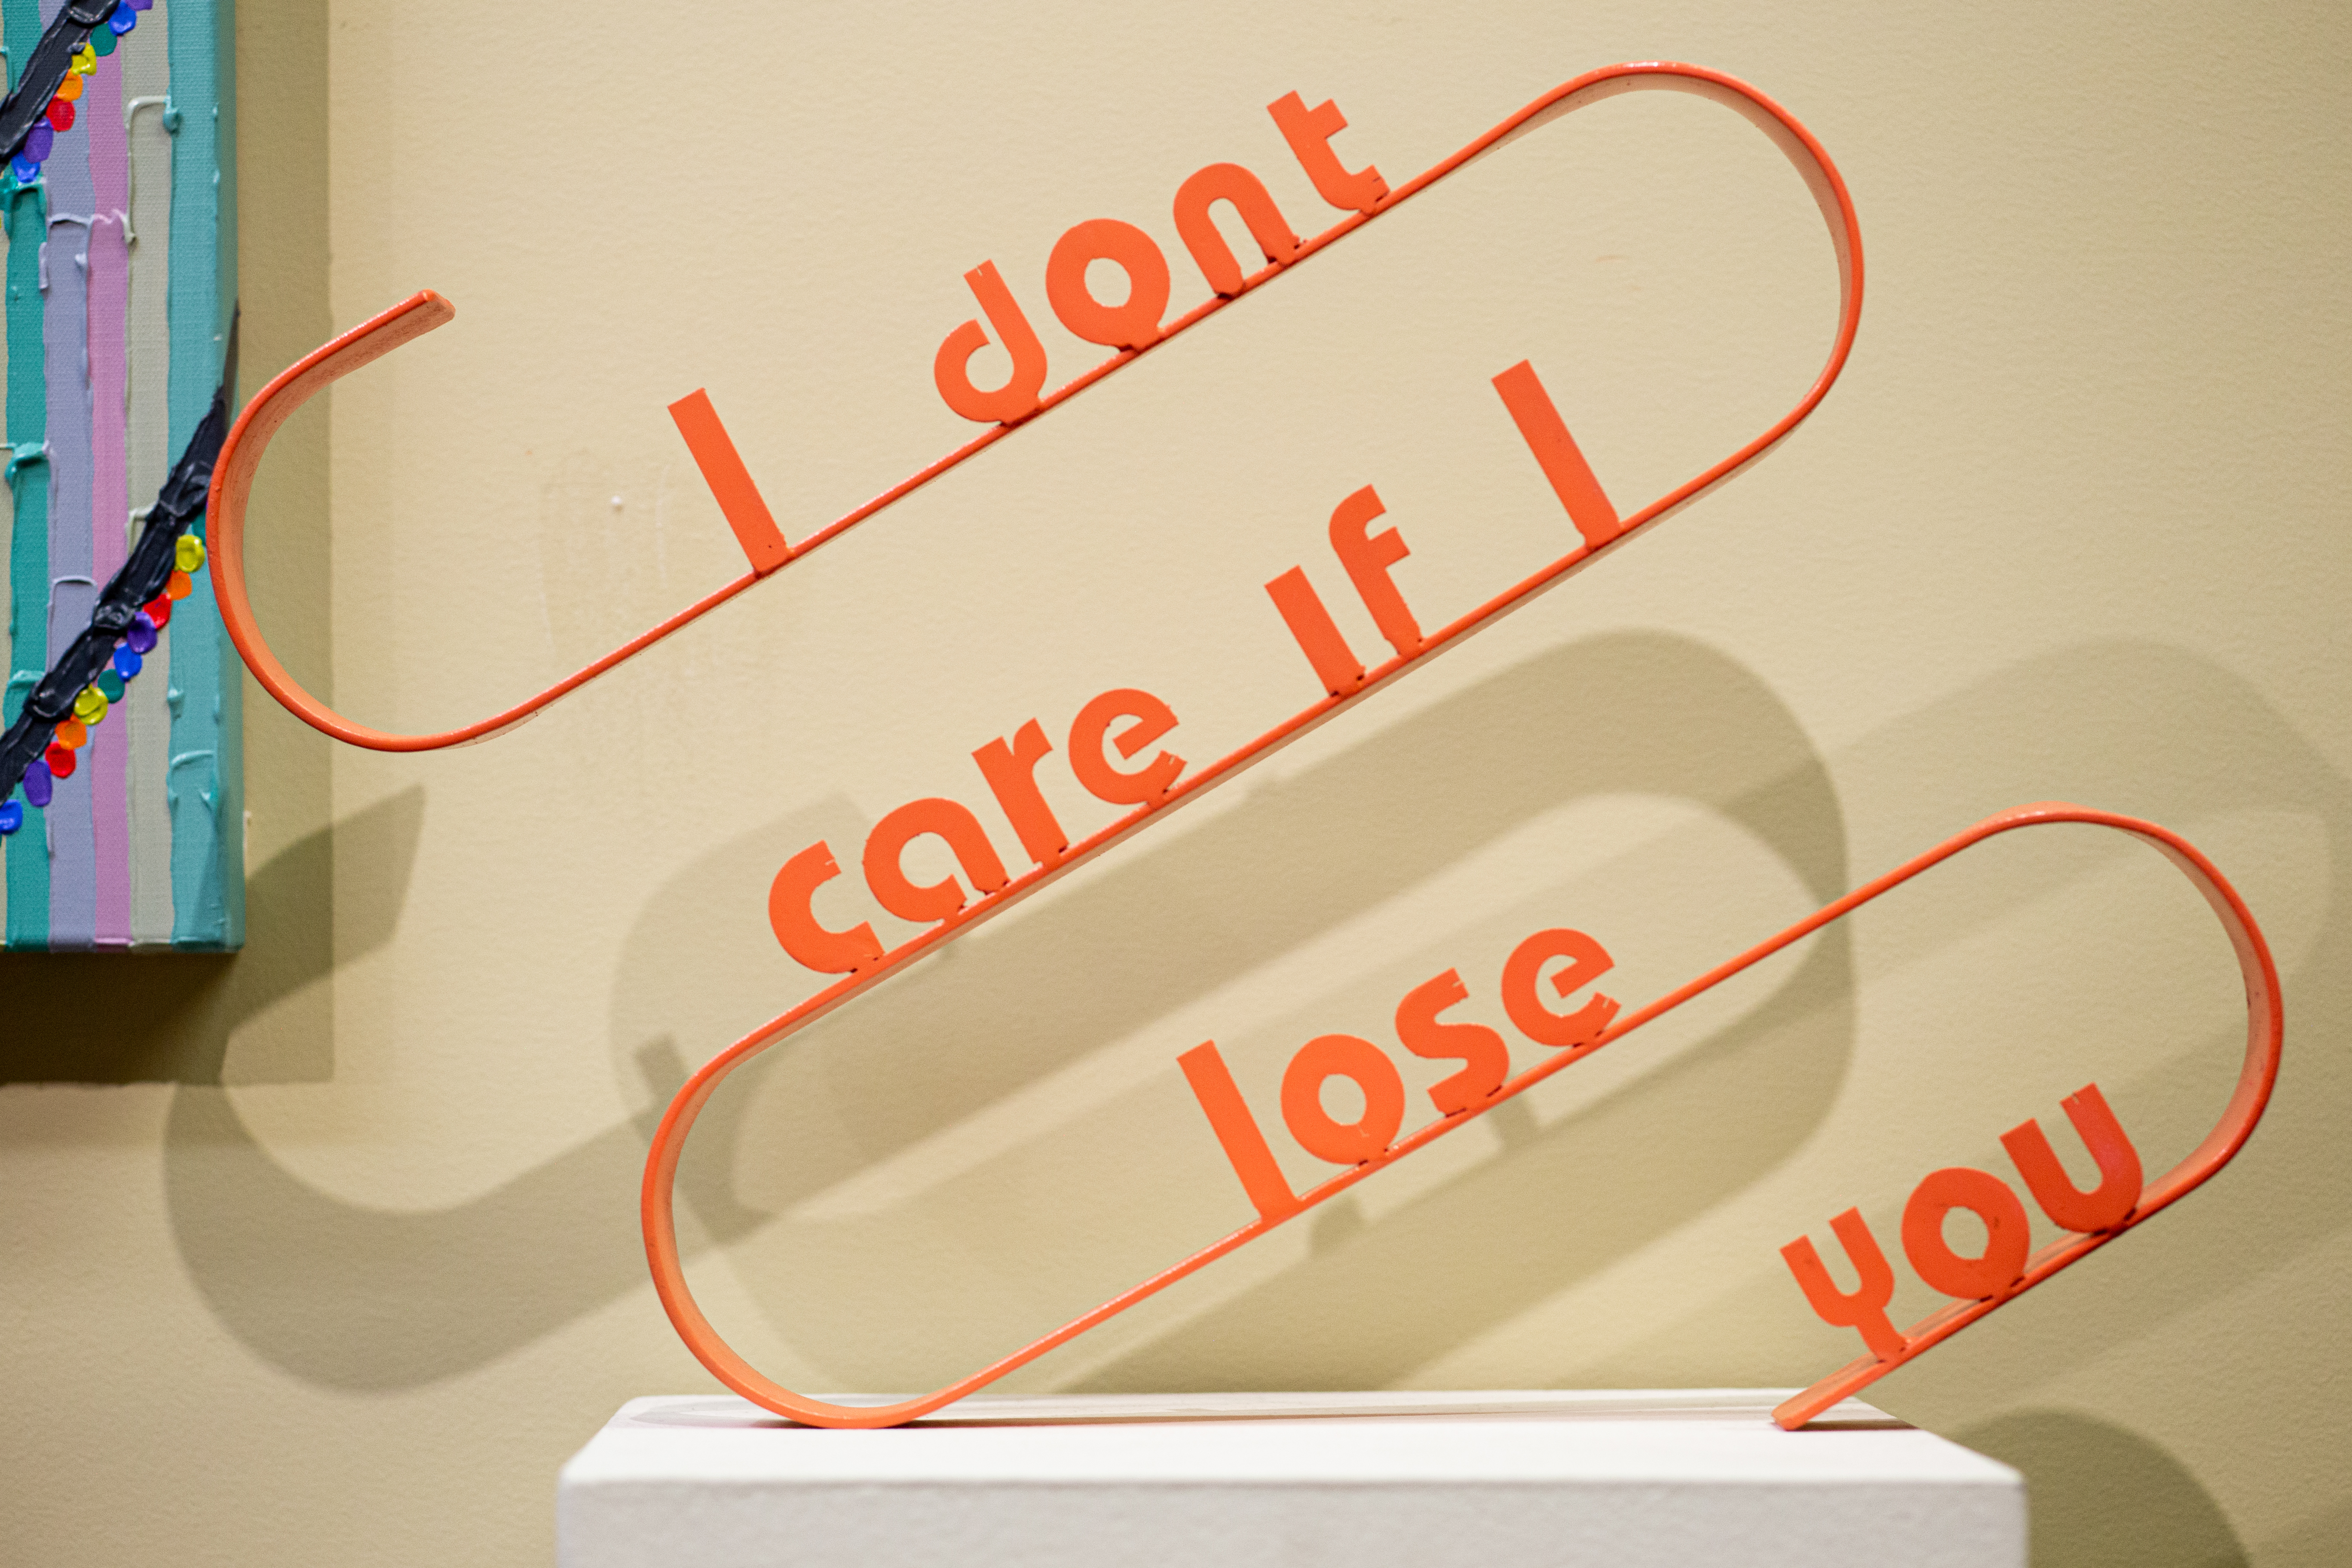 """Erica Mendoza, Nothing without you but everything to gain, 20"""" x 15"""" x 2"""", steel, 2020"""